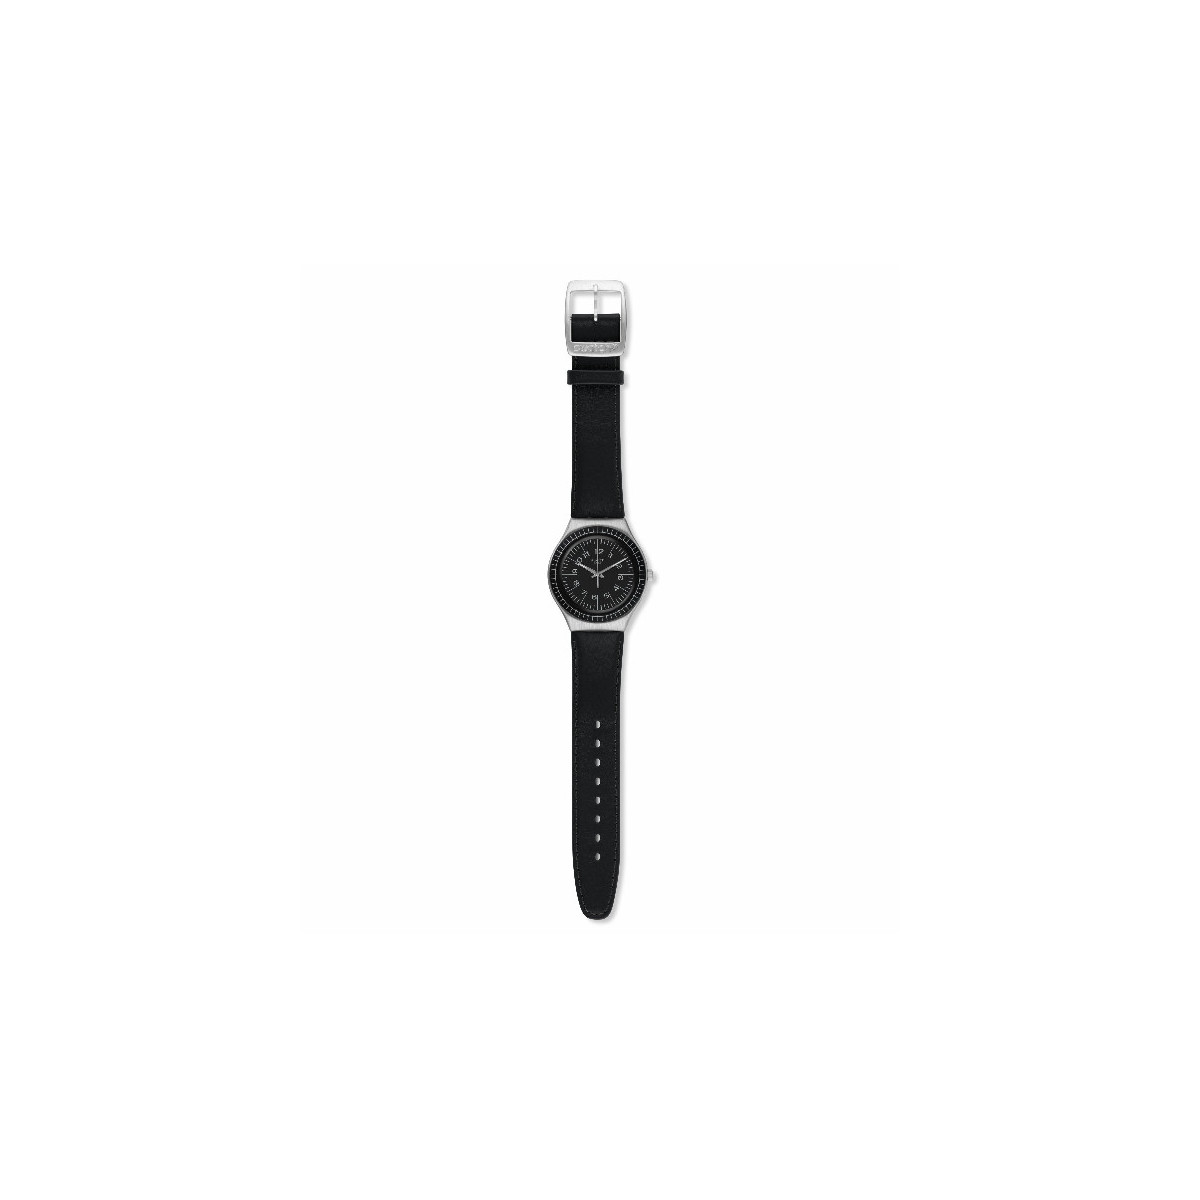 SWATCH_ANTONIN_YGS133C_Outlet_50%